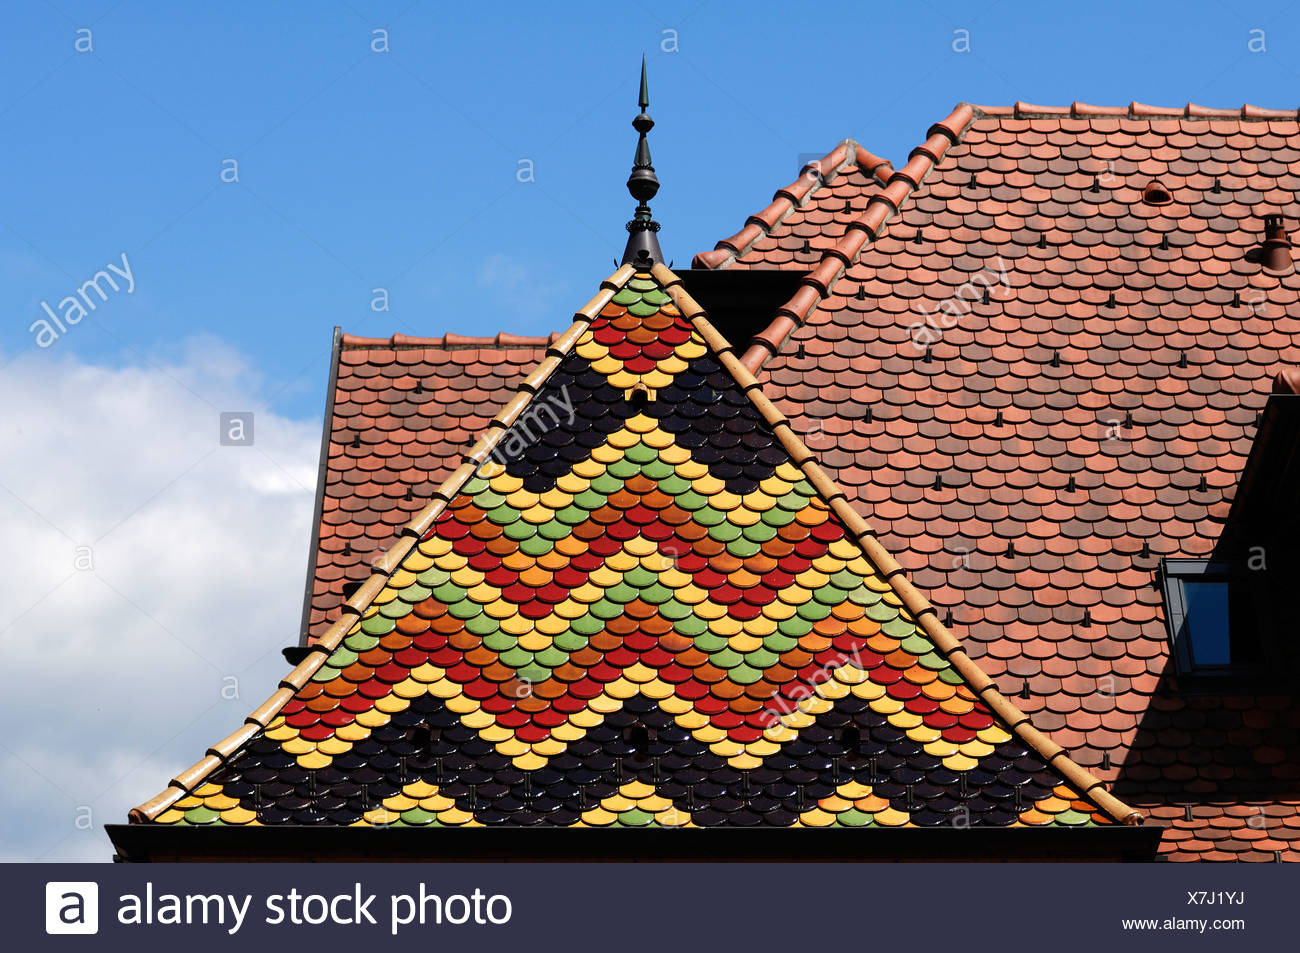 Table bay hotel stock photos table bay hotel stock images alamy - Restaurant la table de mittelwihr ...